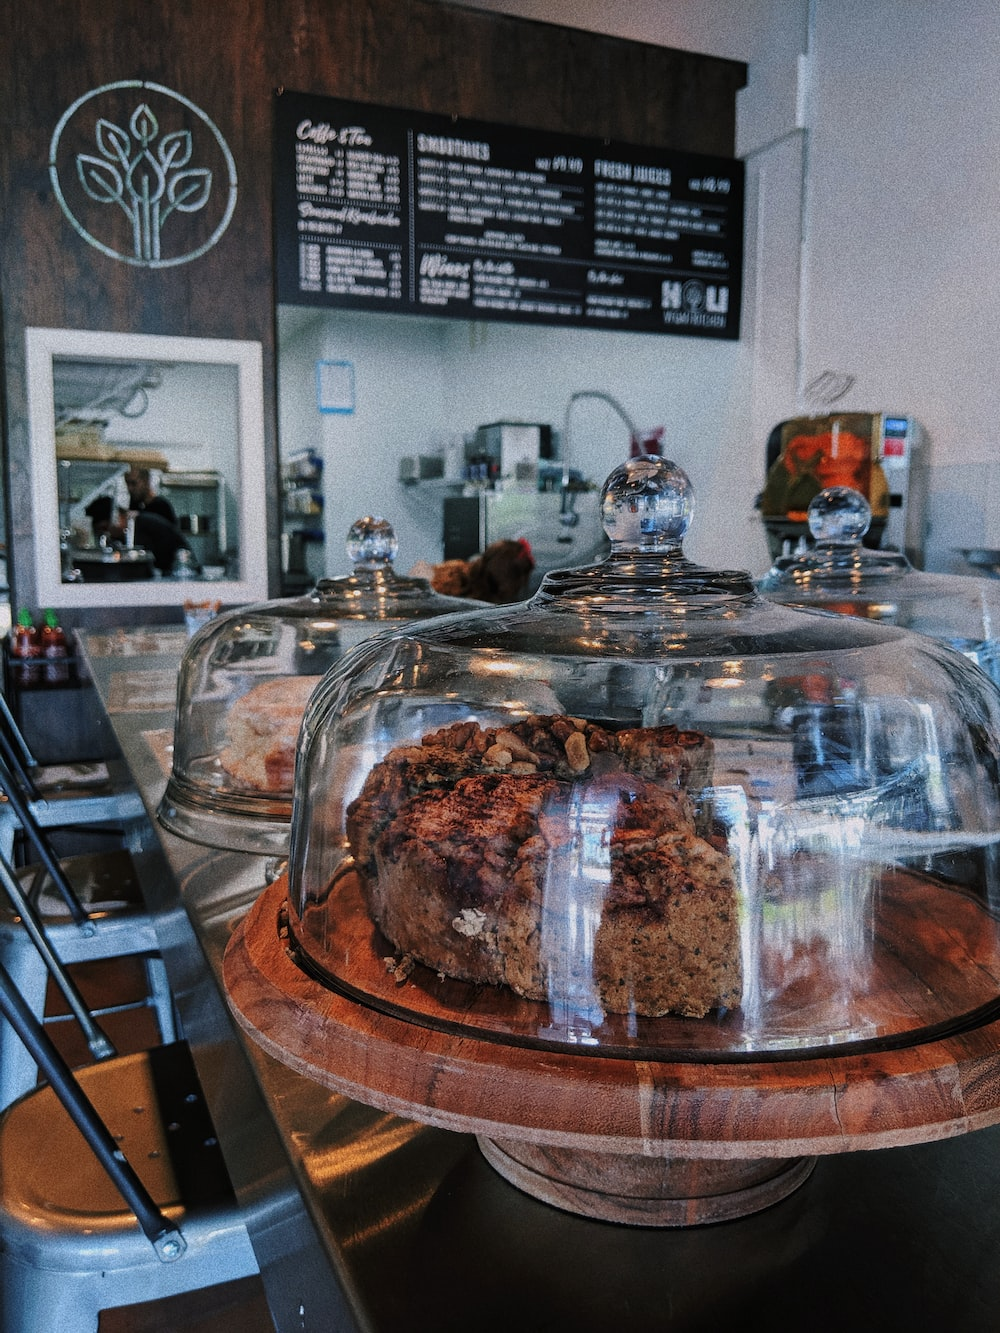 coffee shop sells two cakes inside dome glasses